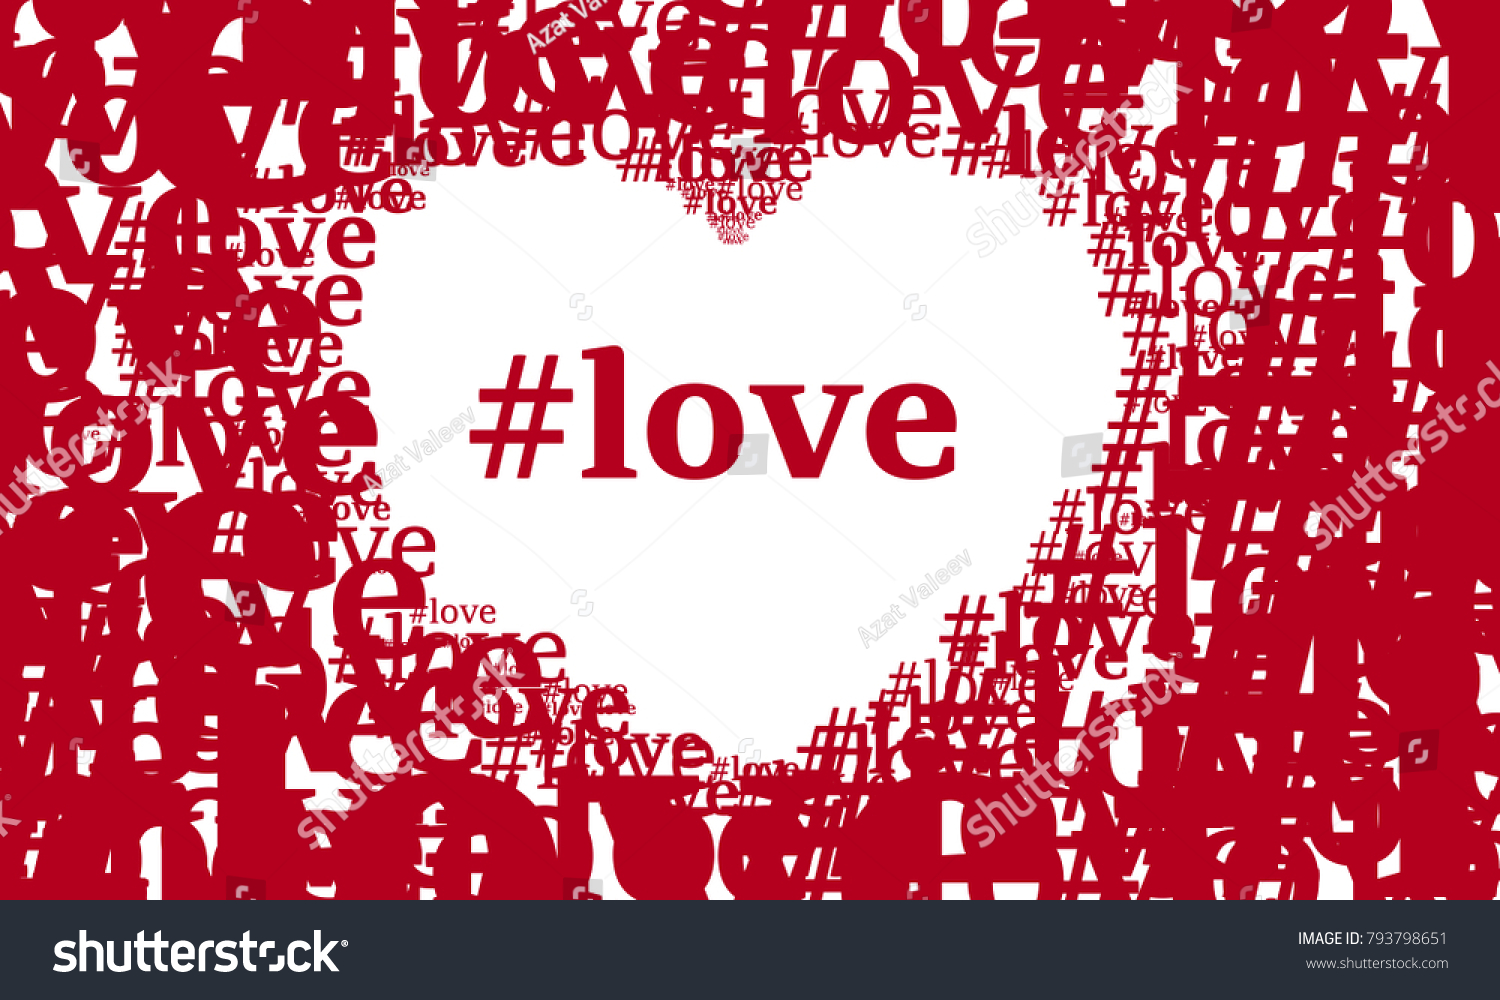 Wallpaper Valentines Day Love Letter Hashtag Stock Vector Royalty